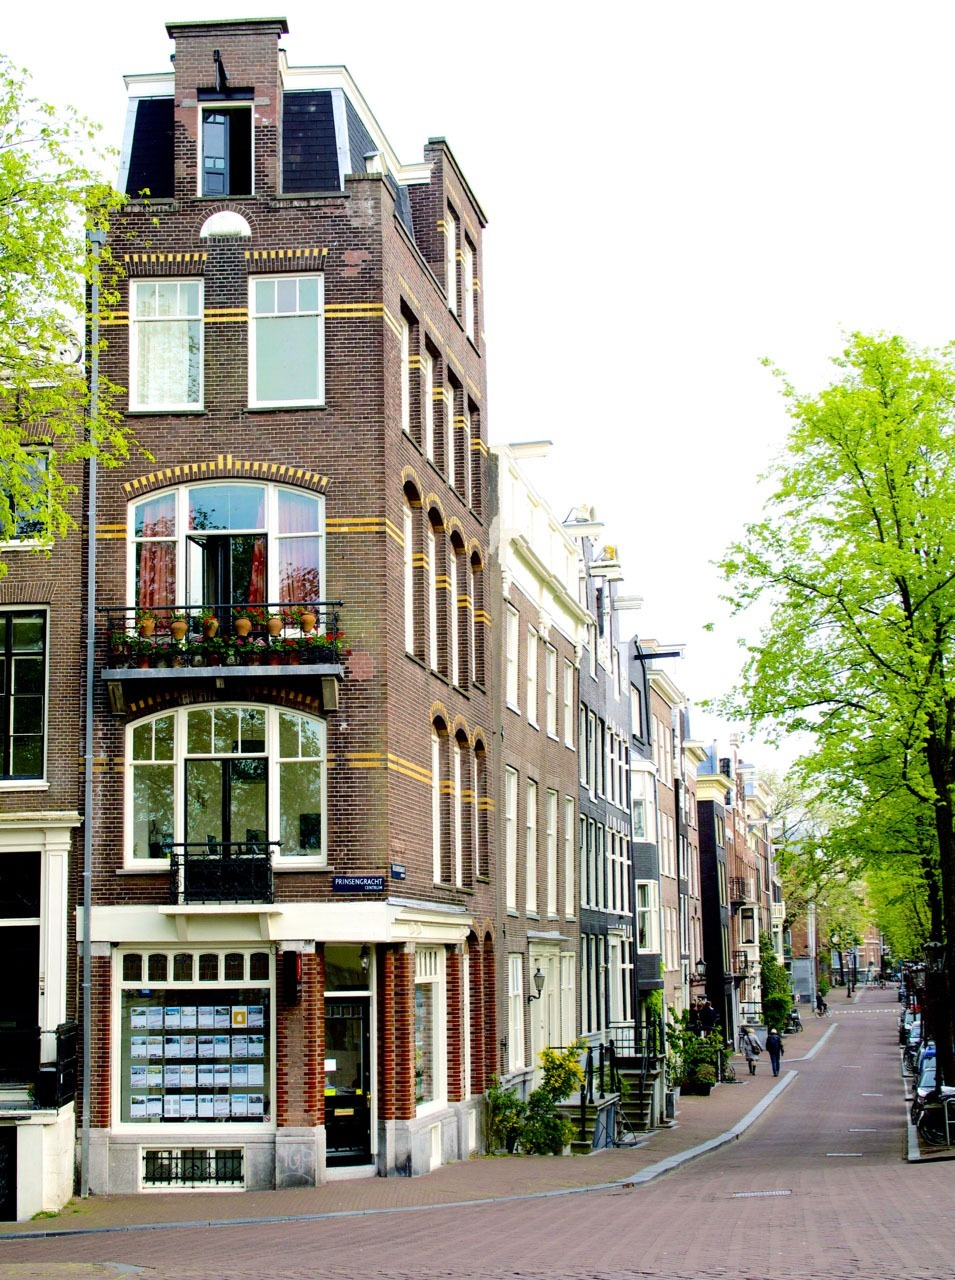 Photos of Amsterdam